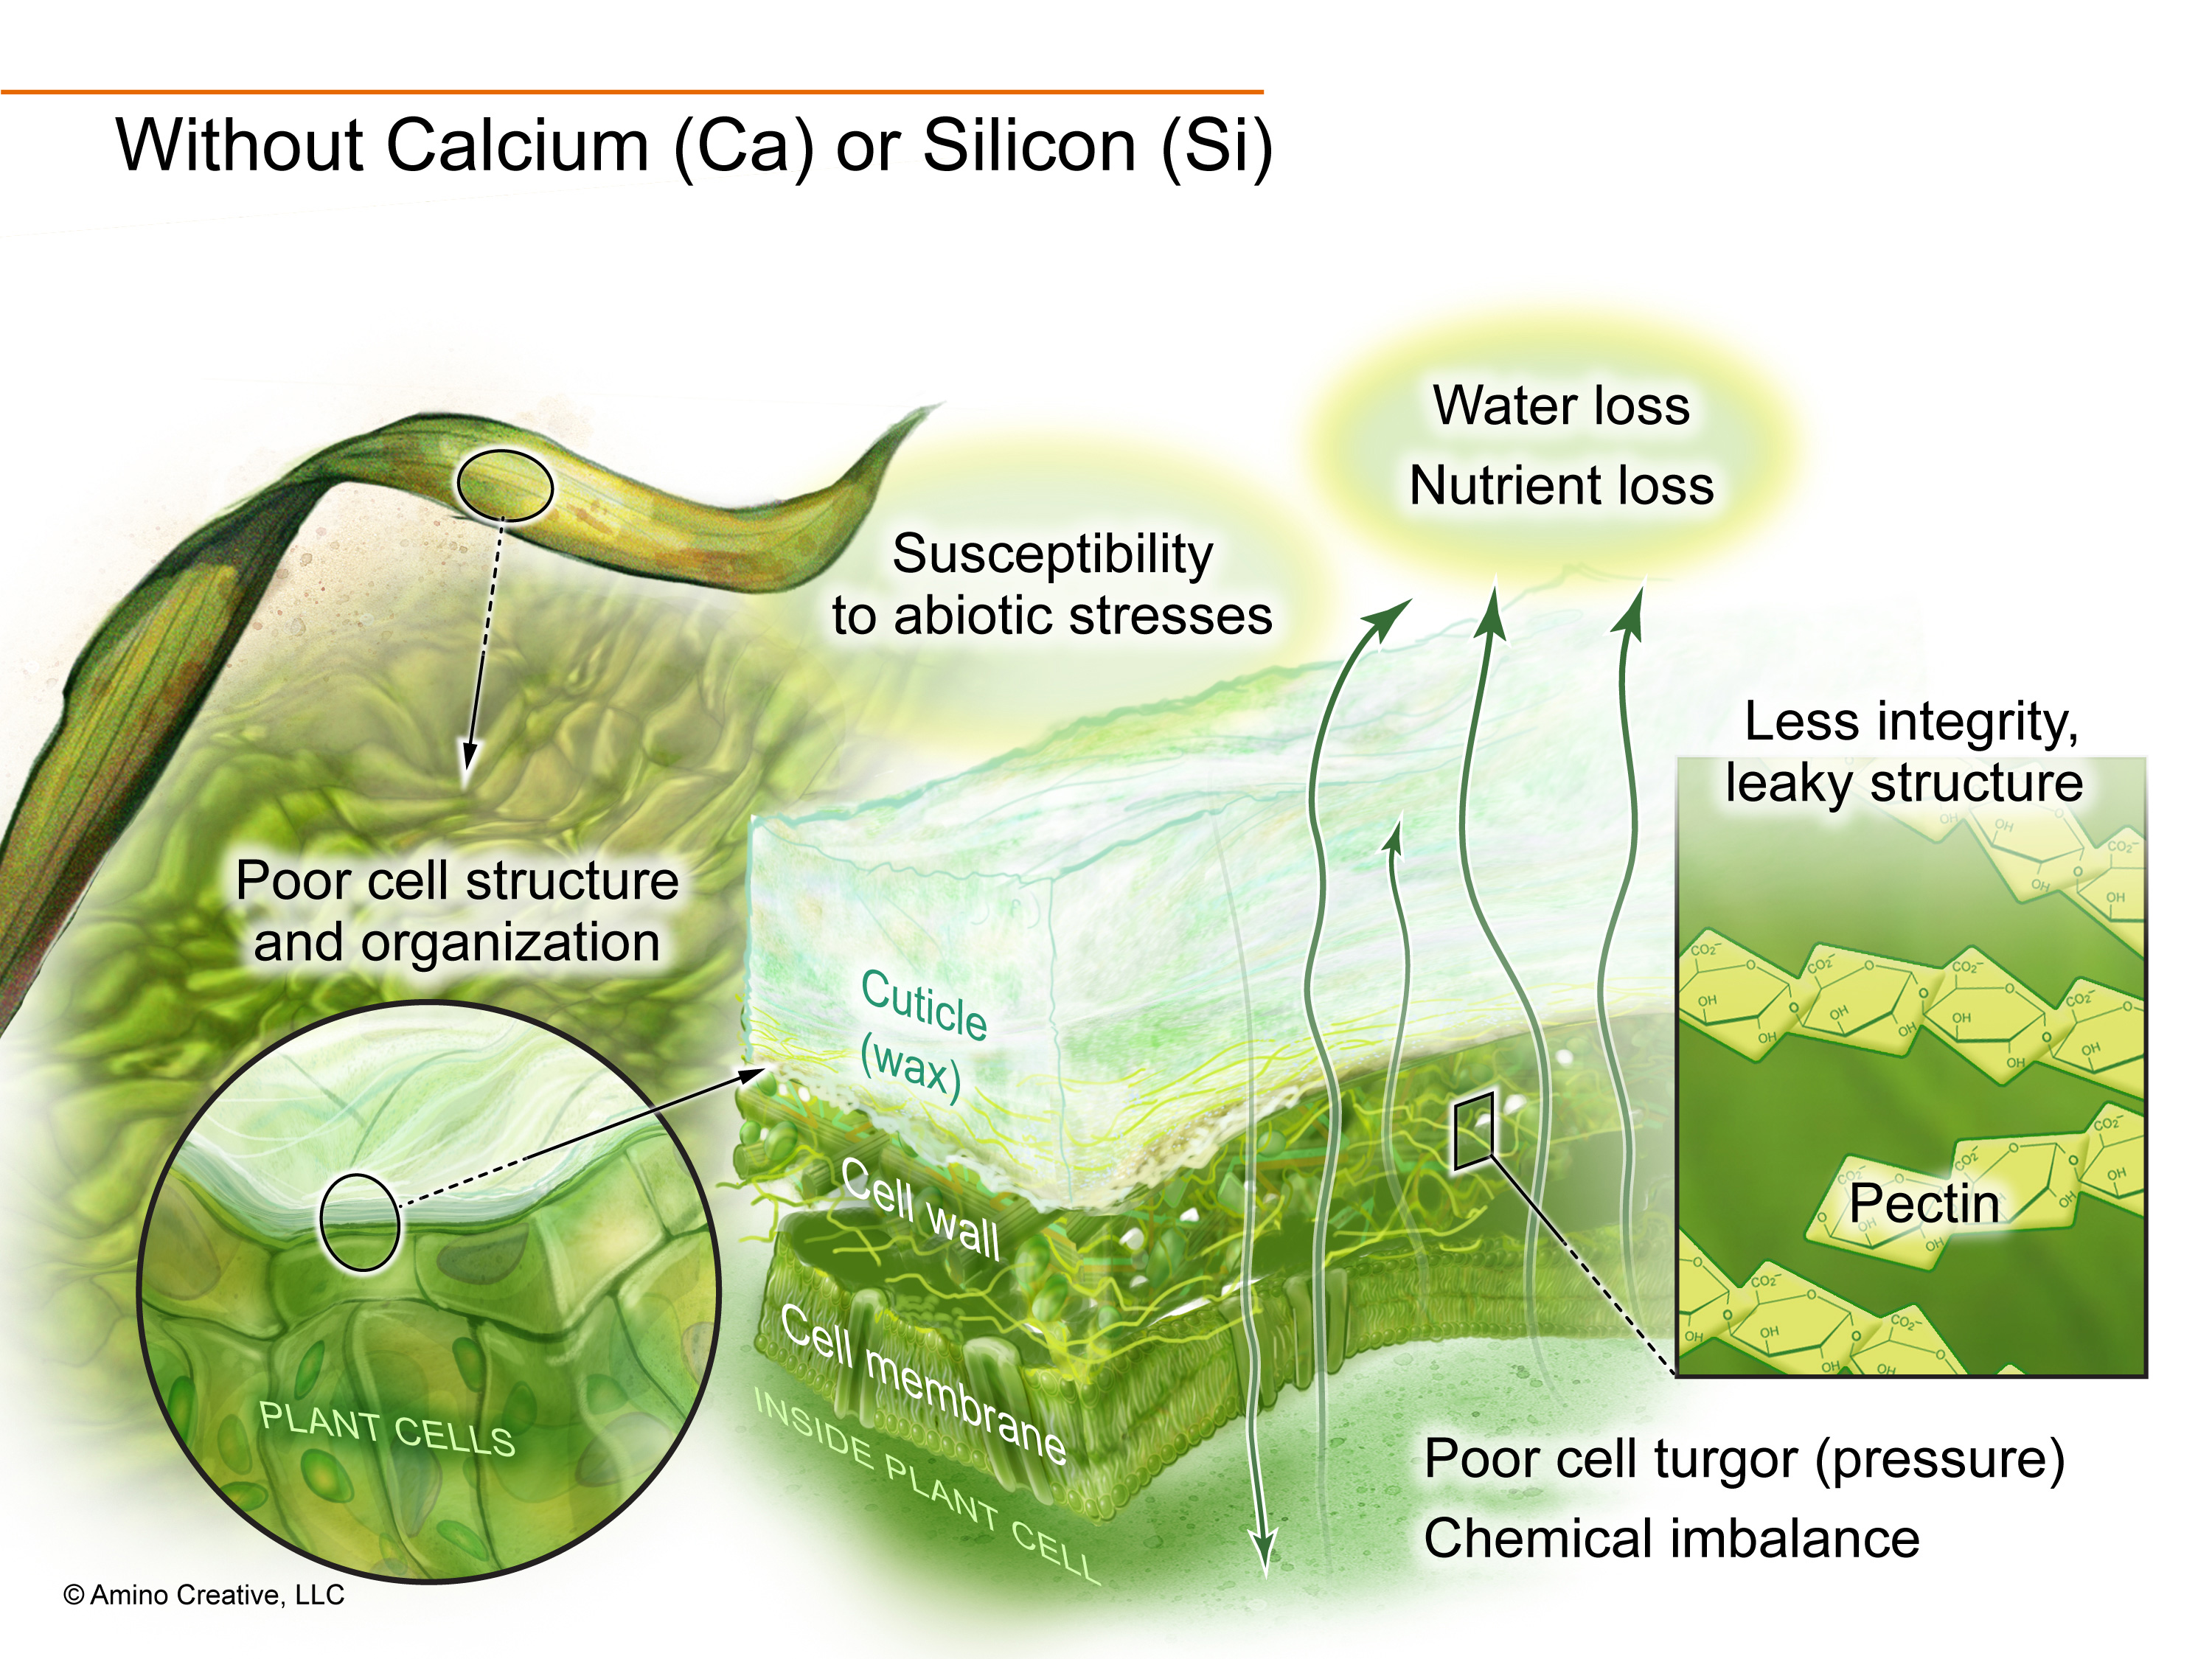 Illustration showing effects of no calcium or silicon.